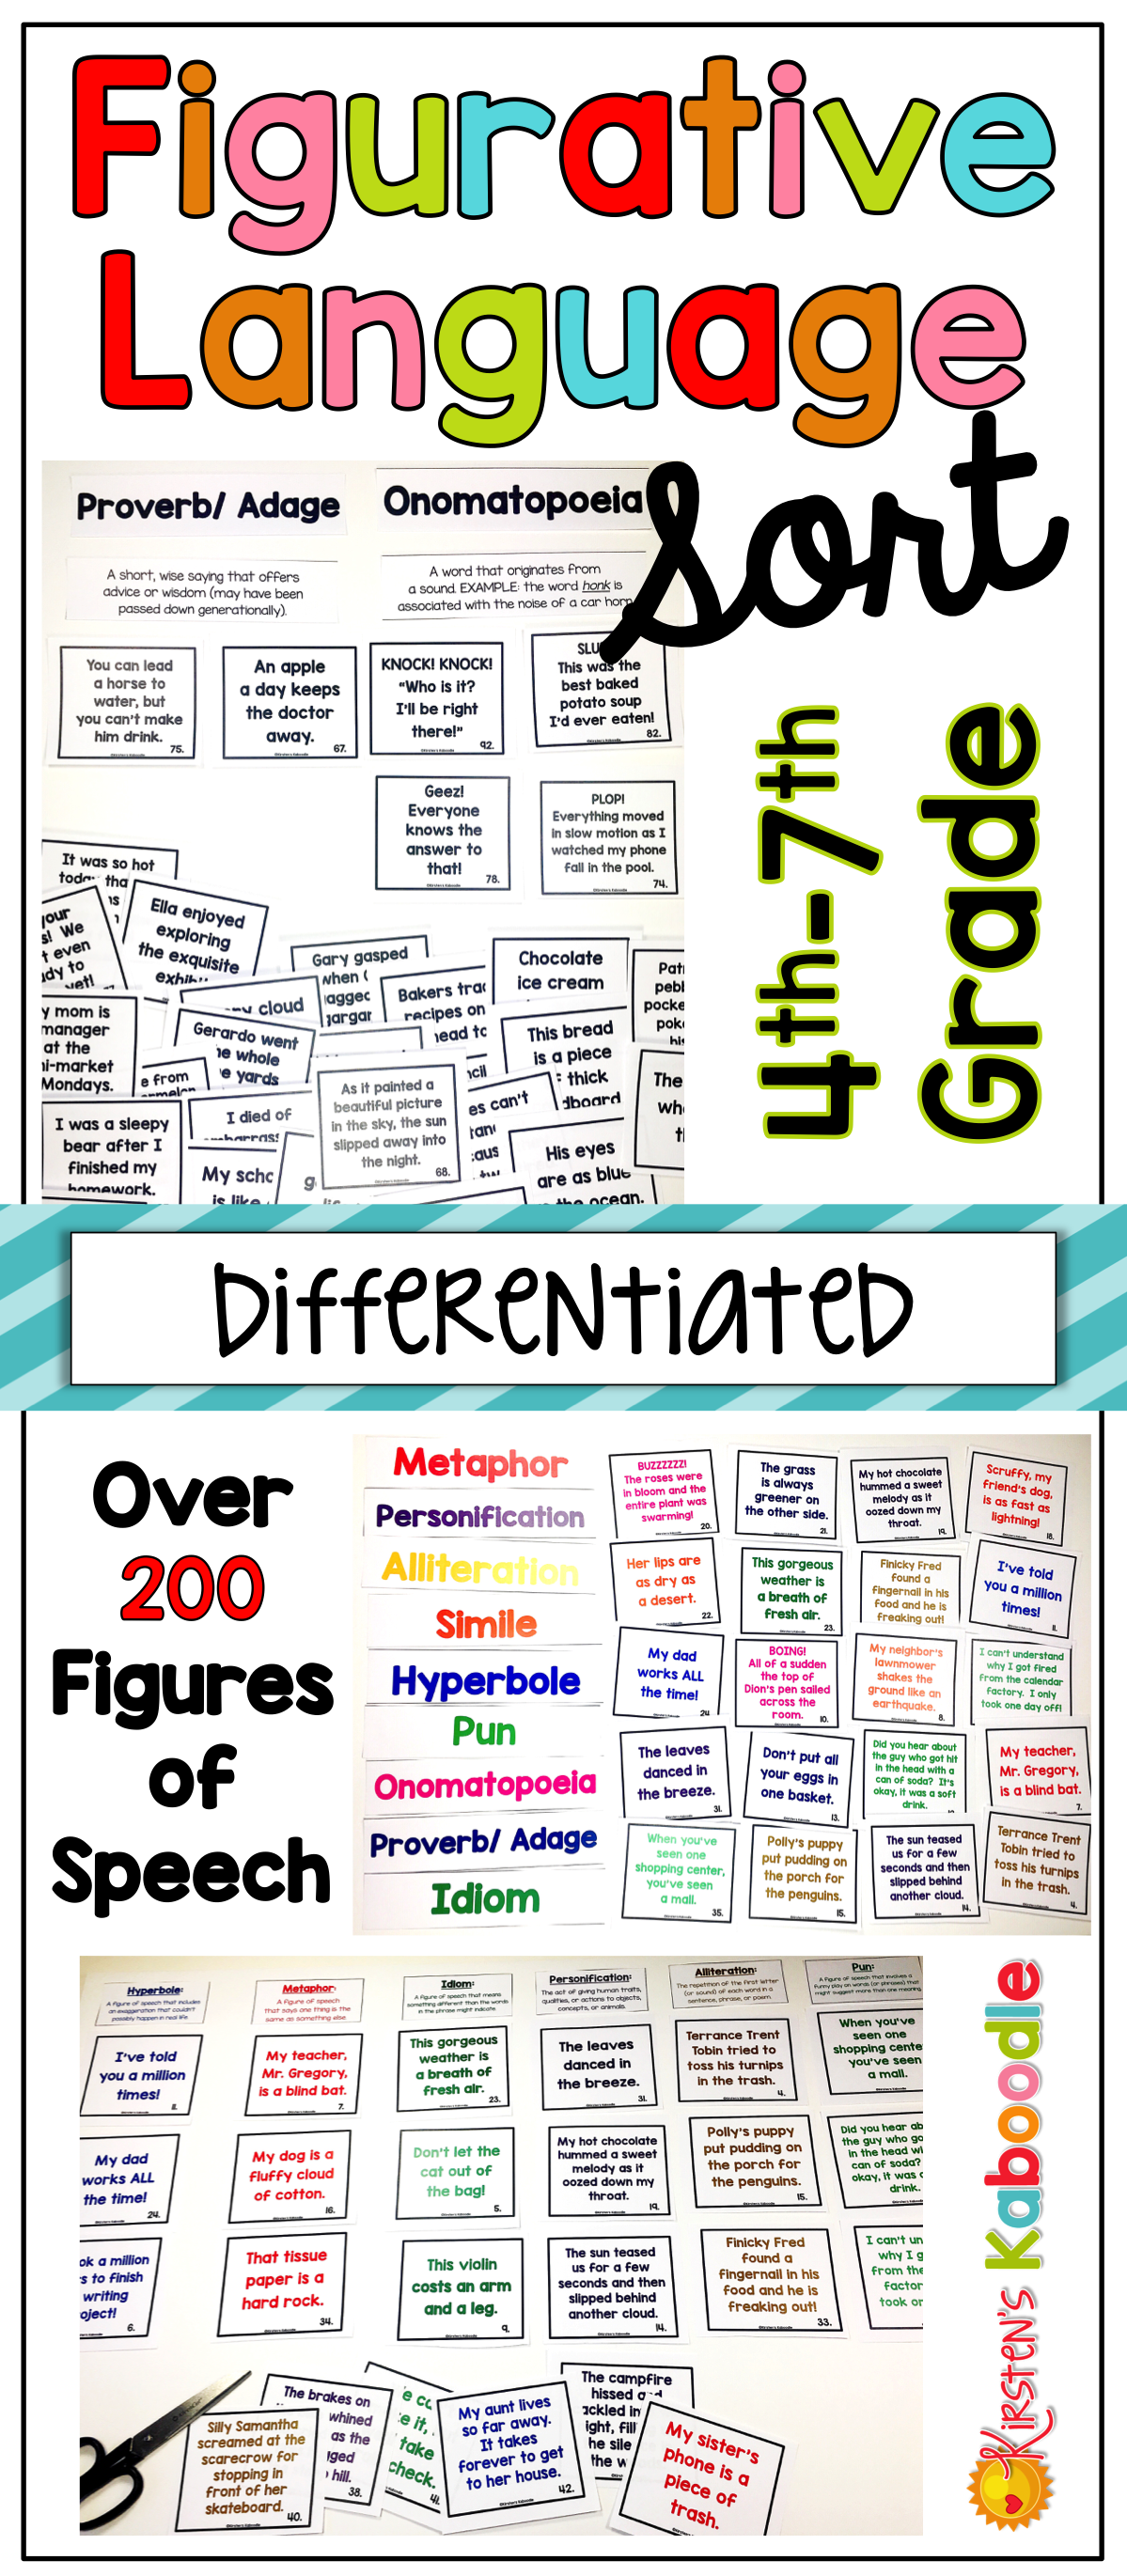 Worksheets Figurative Language Worksheets For Middle School figurative language sort differentiated activity activity